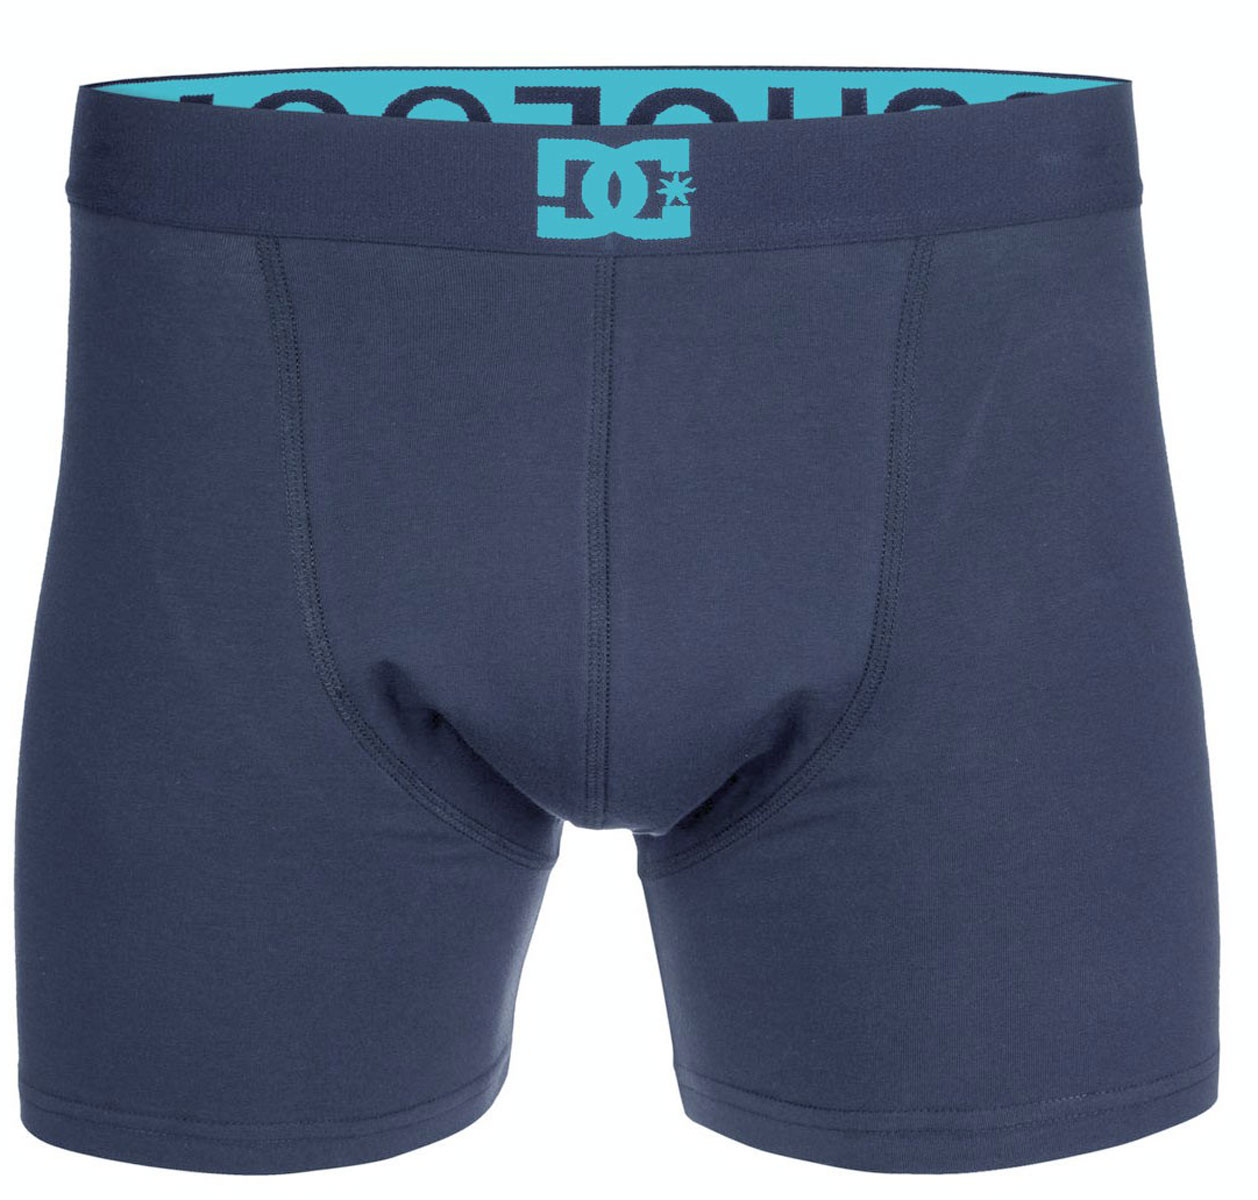 Трусы мужские DC Shoes Woolsey, цвет: синий. EDYLW00003-BRA0. Размер S (42) dc shoes кеды dc shoes evan smith hi navy gold 9